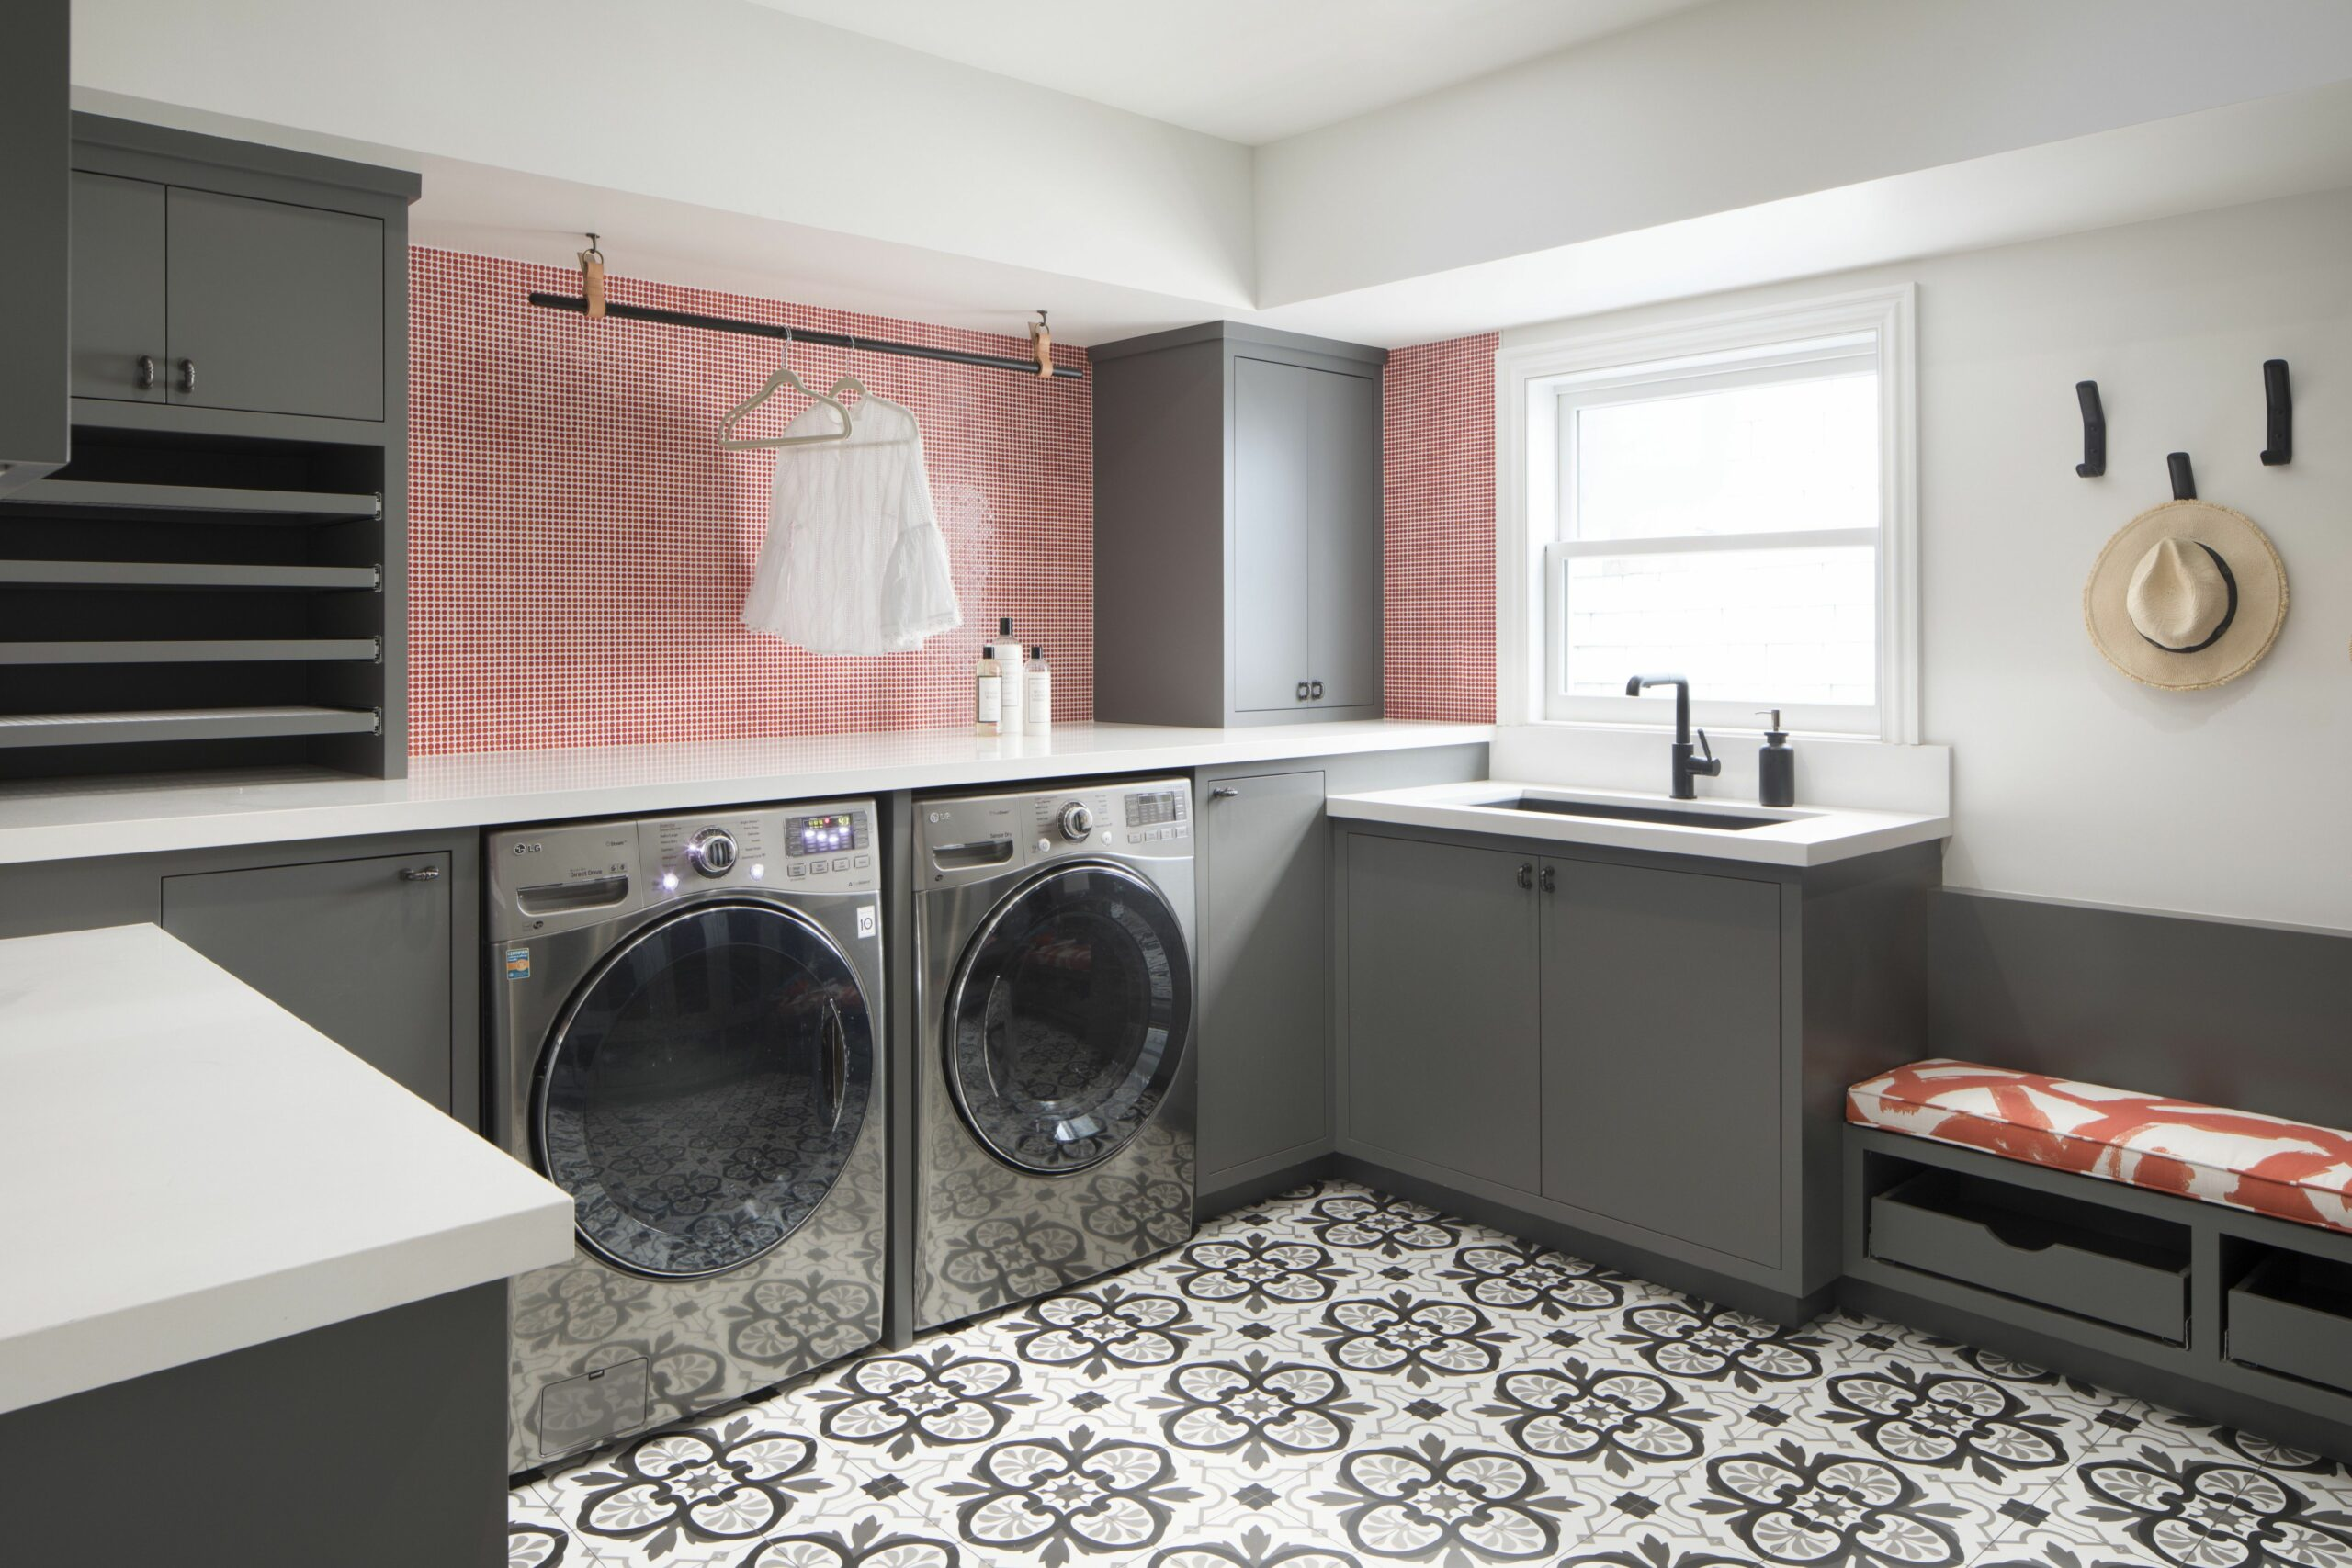 9 Best Laundry Rooms - Lovely & Functional Laundry Room Ideas - laundry room update ideas